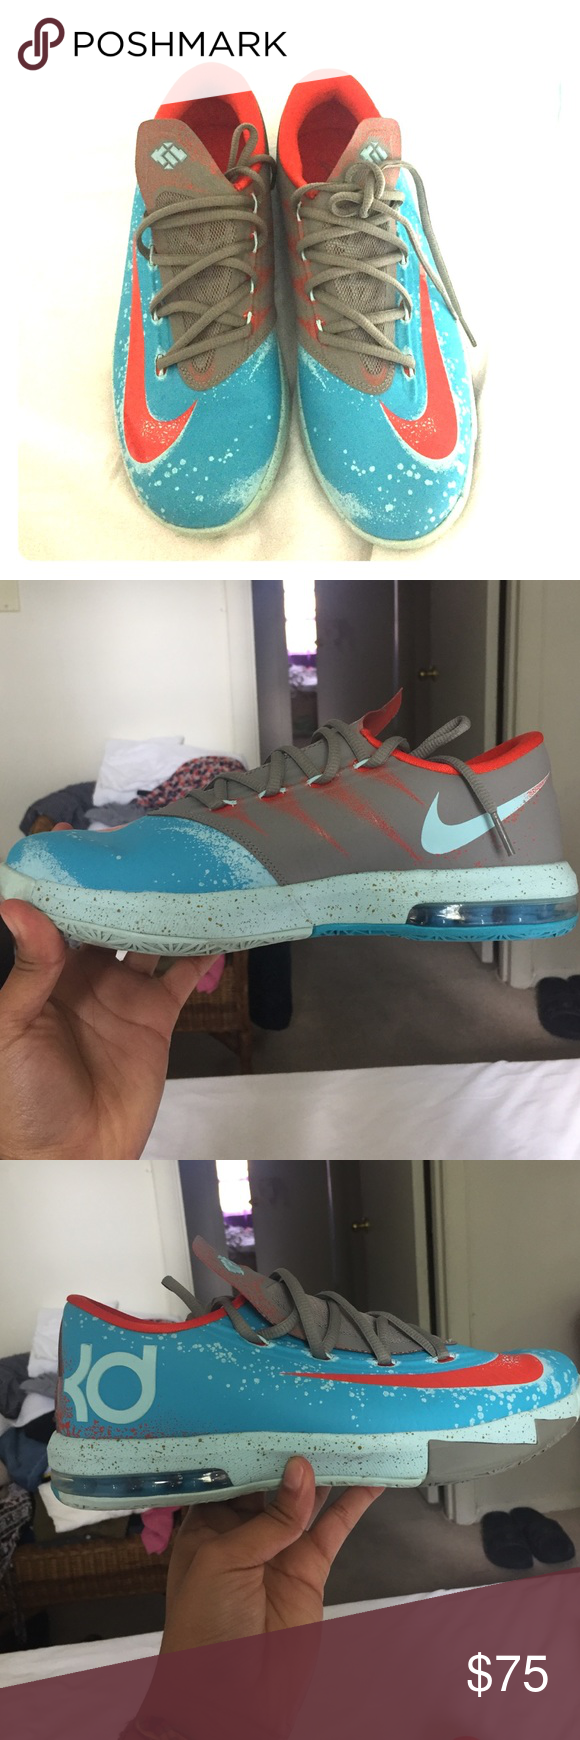 quality design 3b327 651eb Nike KD VI 6 Maryland Blue Crab Gamma Blue  Orange size Y7 599424-400  women s size 9 men s size 7.5 Nike Shoes Athletic Shoes